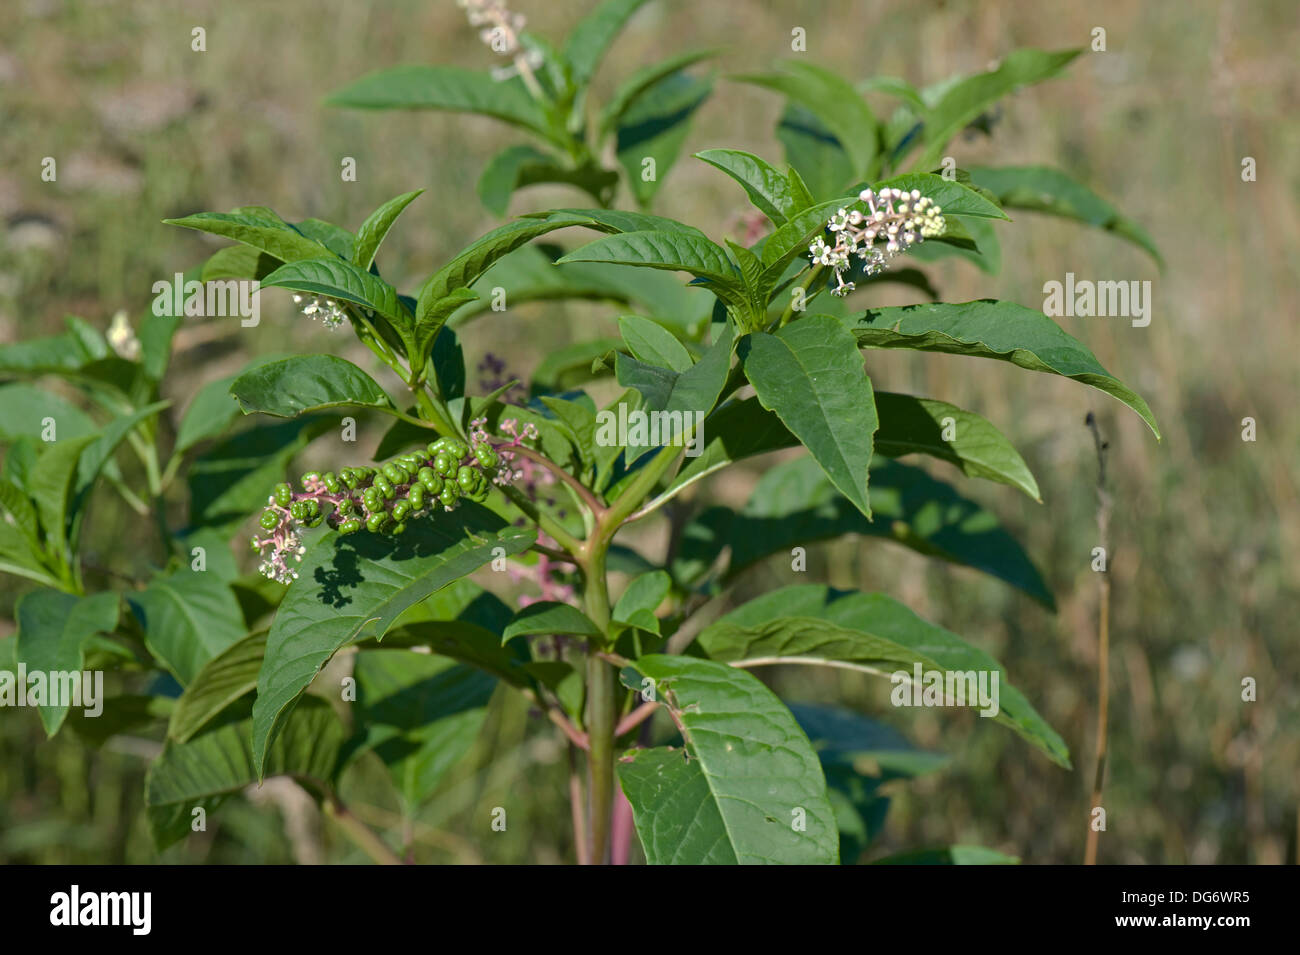 American pokeweed, Phytolacca americana, flowering and seeding plant - Stock Image